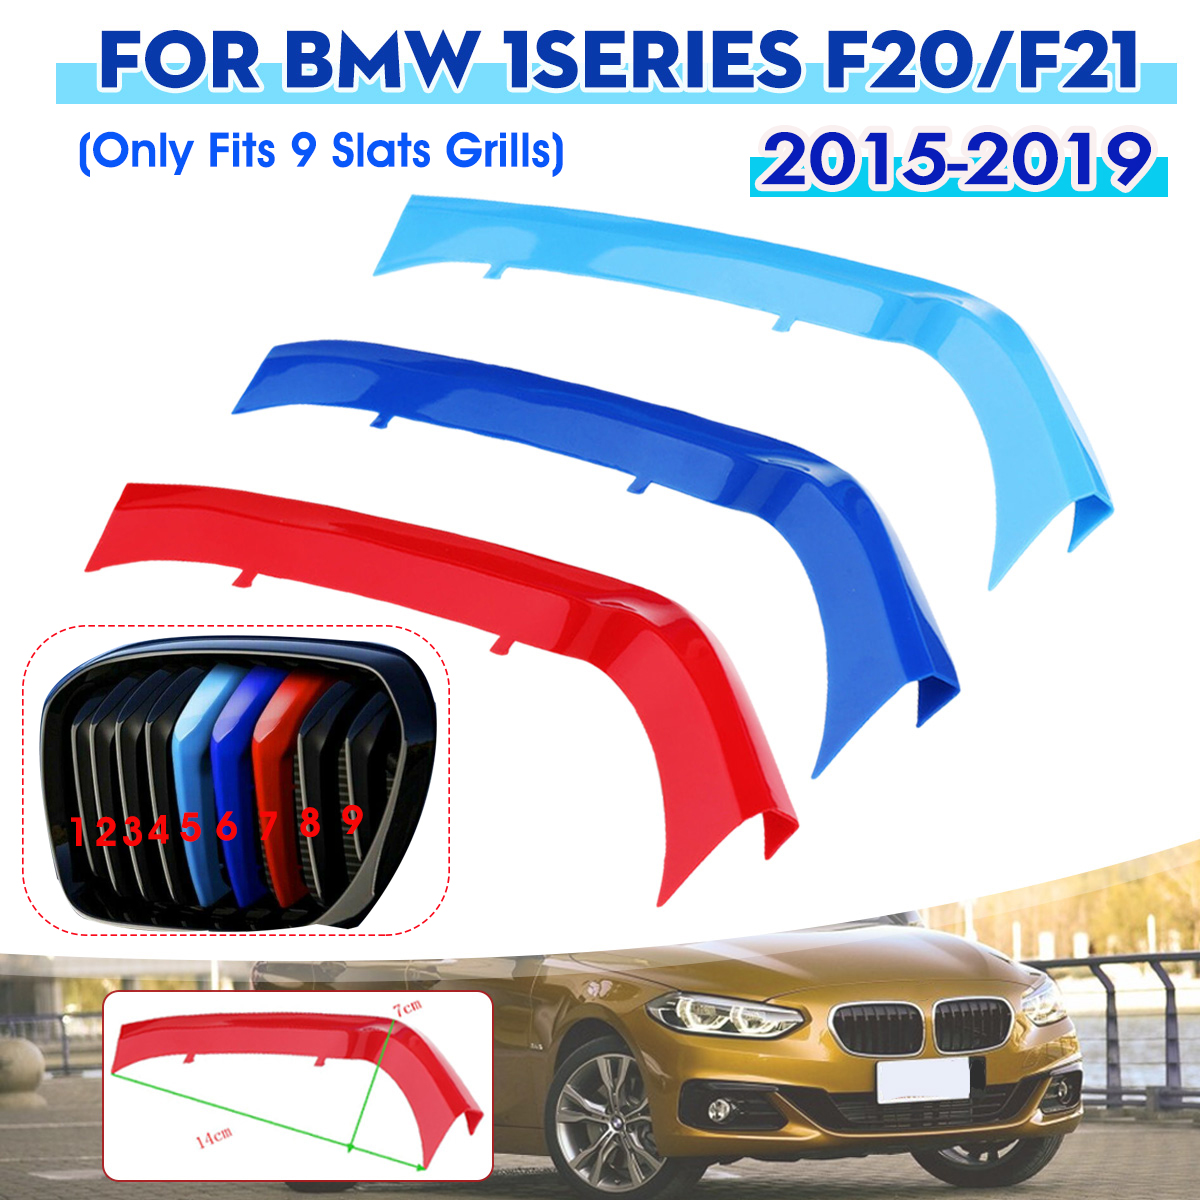 3pcs For <font><b>BMW</b></font> 1-Series <font><b>F20</b></font>/F21 2015 2016 2017 2018 9 Bar Car Front Grille Trim Sport Strips Cover <font><b>Stickers</b></font> Accessories image